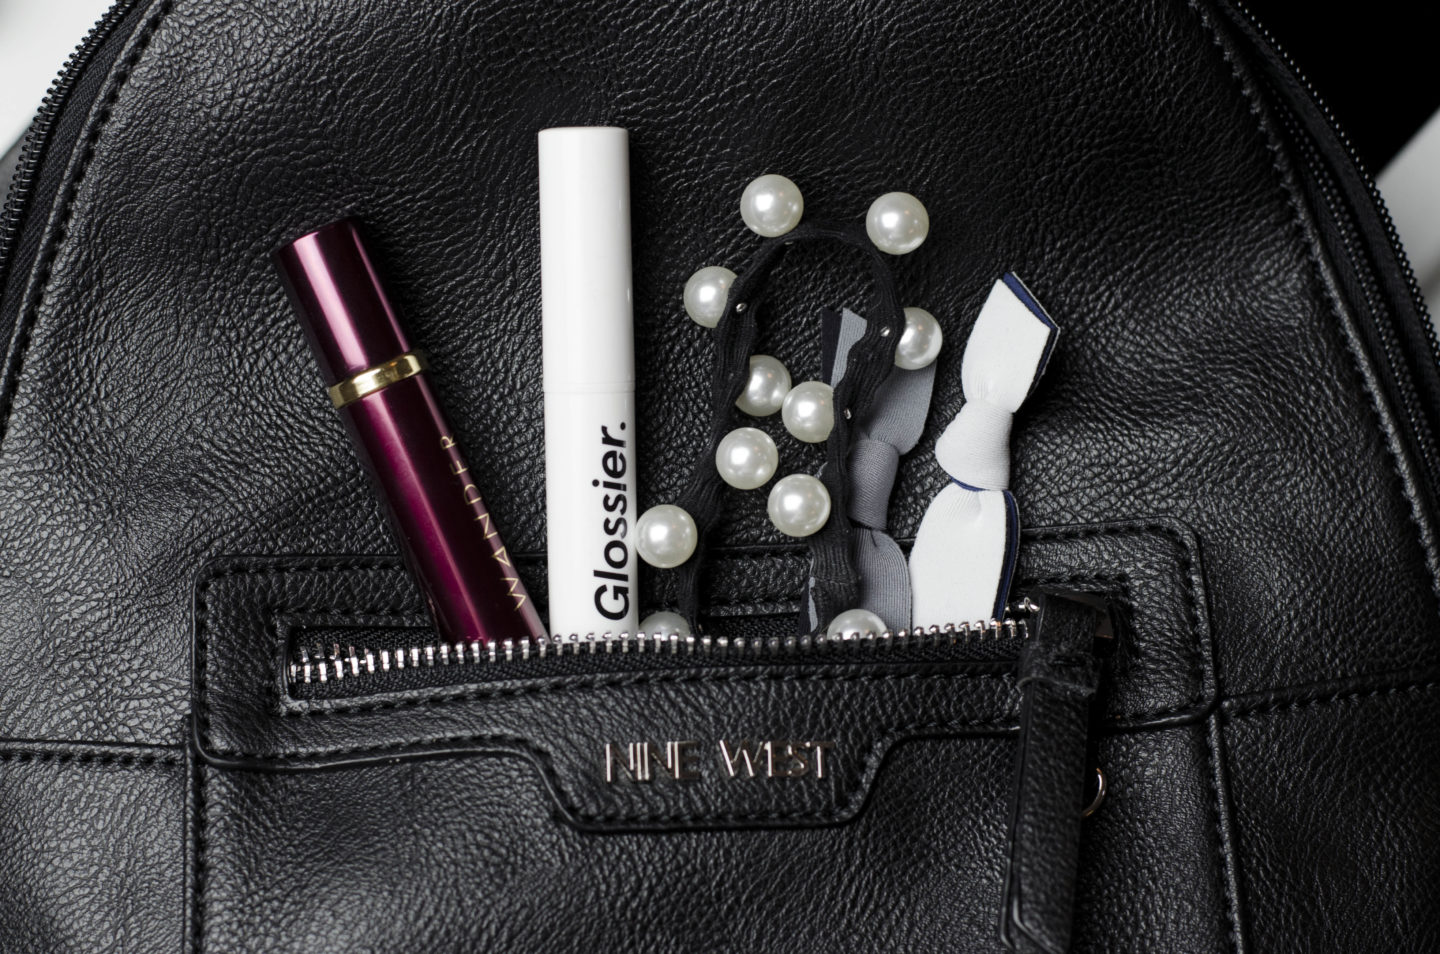 What's in my bag small pocket